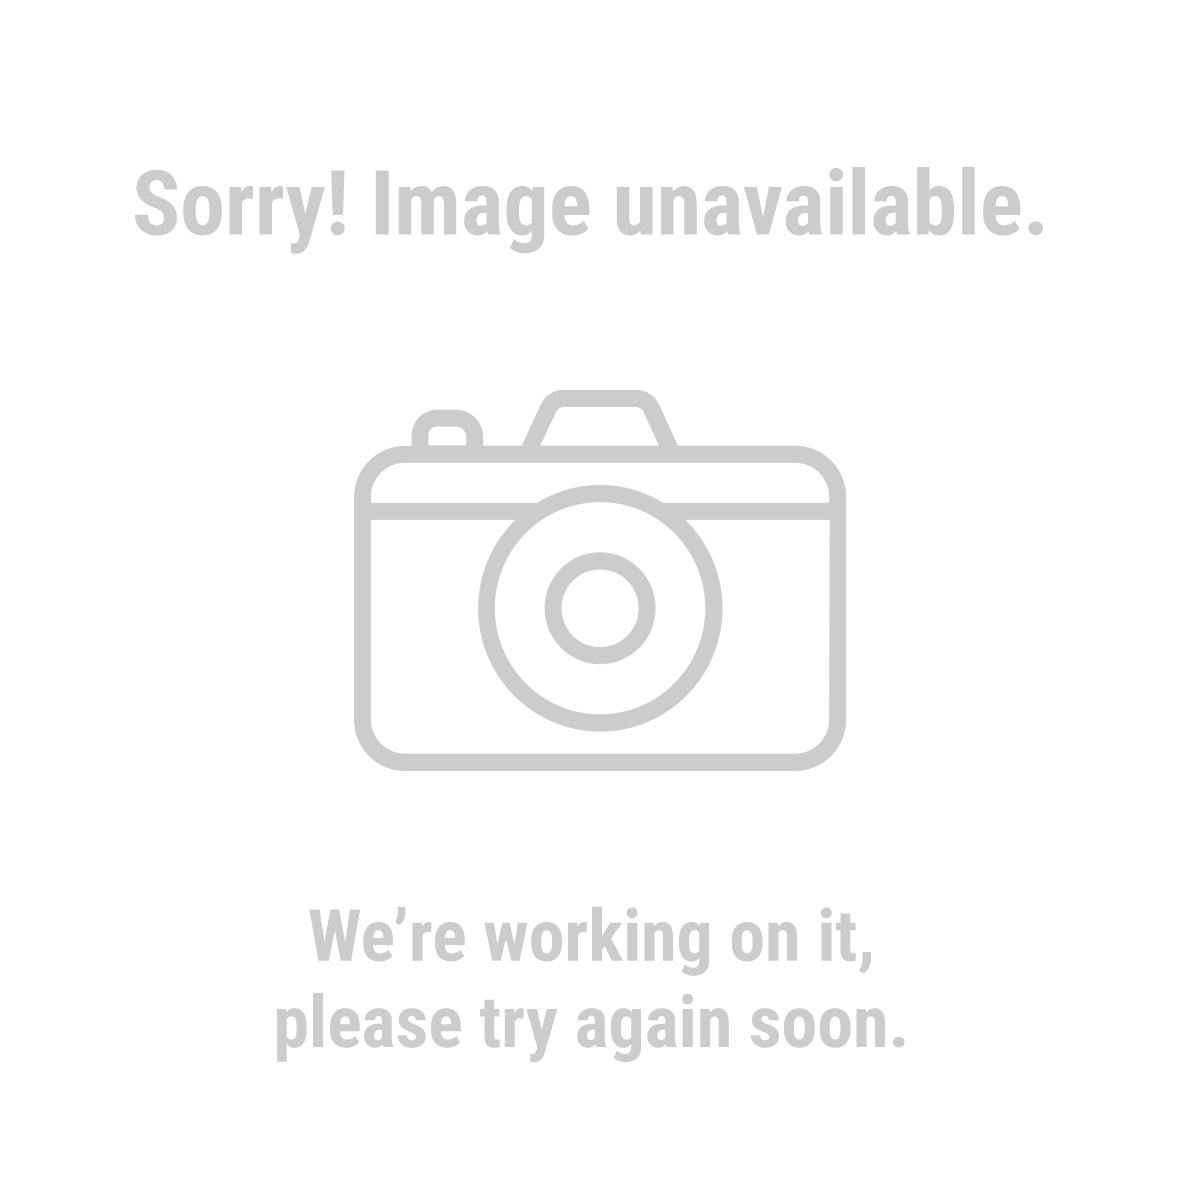 Haul-Master 66244 2.27 Cubic Ft. Steel Trailer Tongue Box